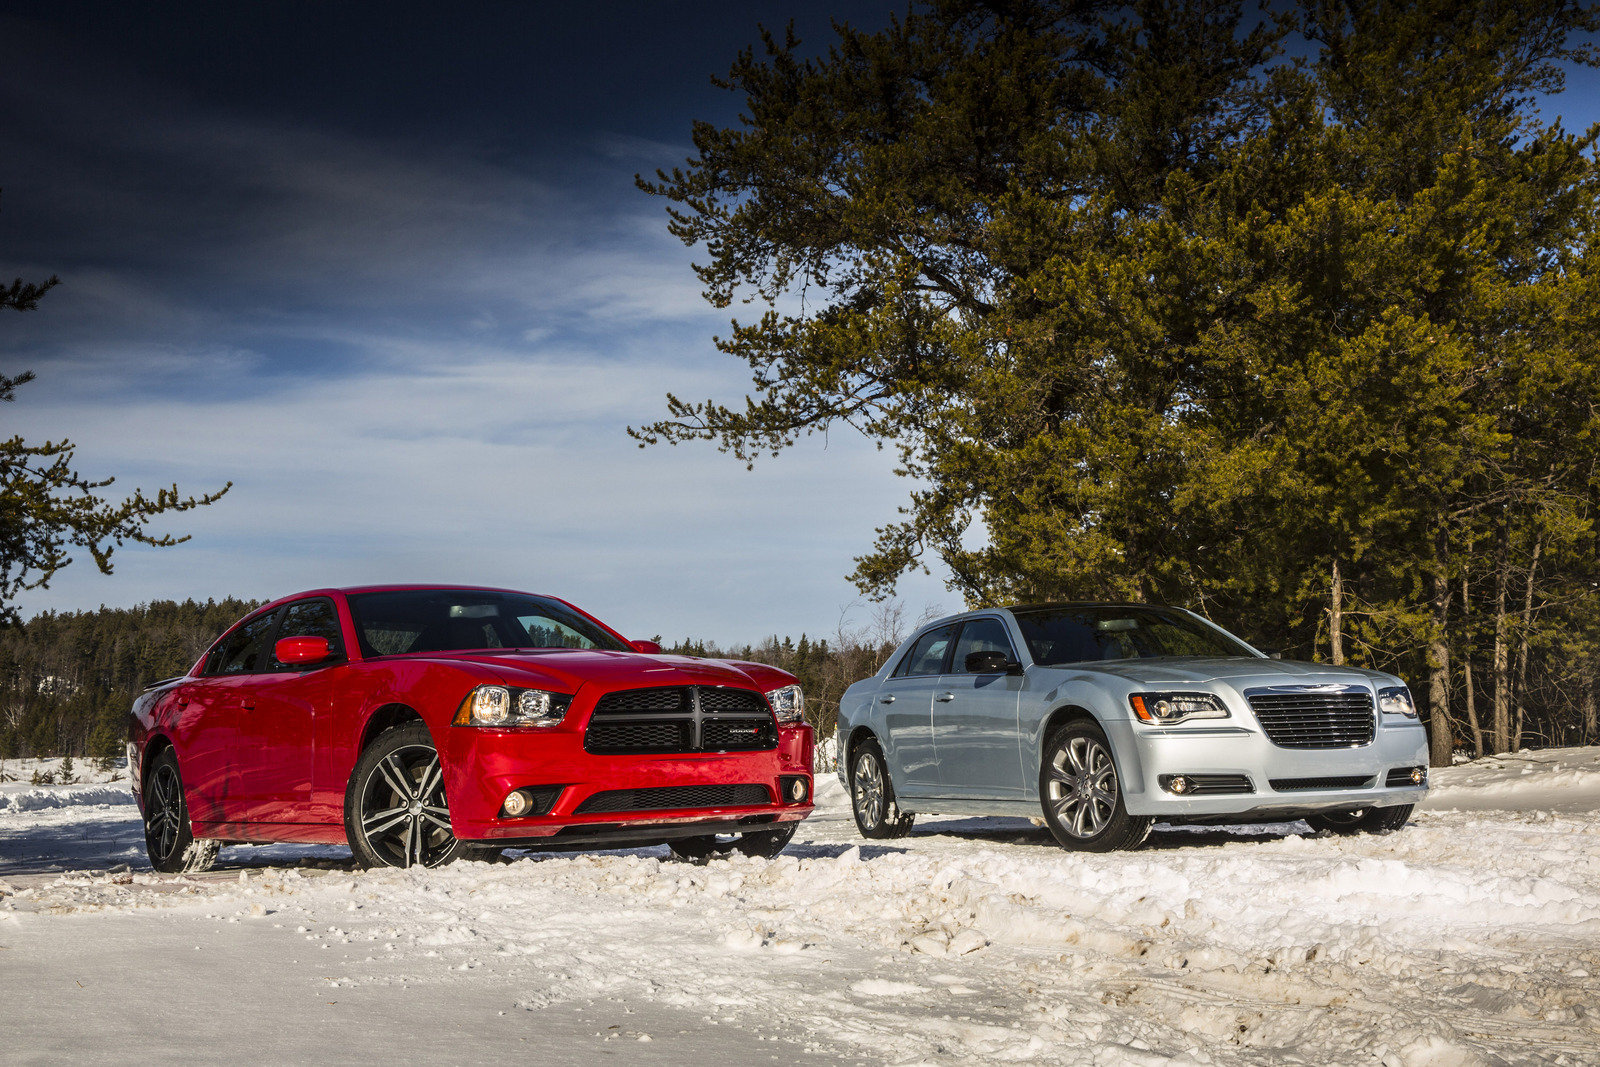 2013 dodge charger awd sport picture 517459 car review top speed. Black Bedroom Furniture Sets. Home Design Ideas